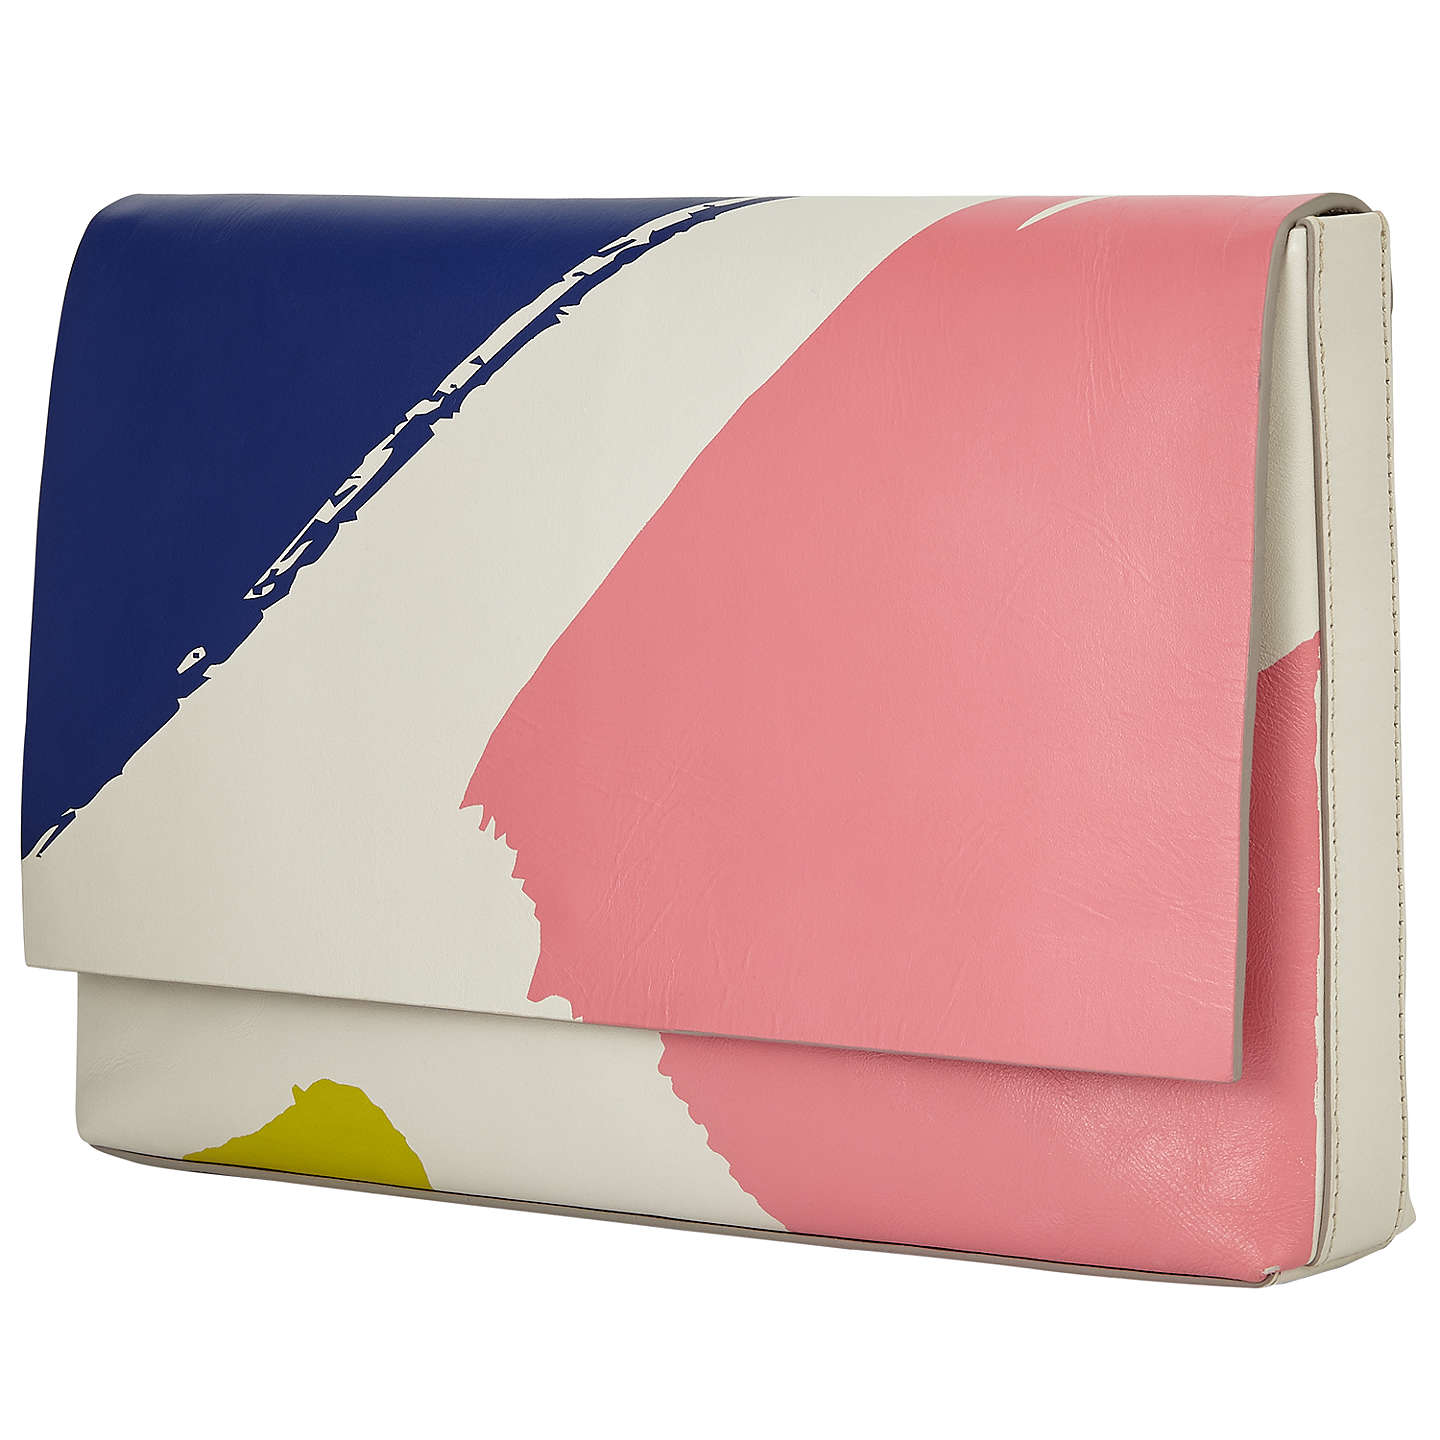 BuyKin by John Lewis Laura Slater Leather Clutch Bag, Multi Online at johnlewis.com